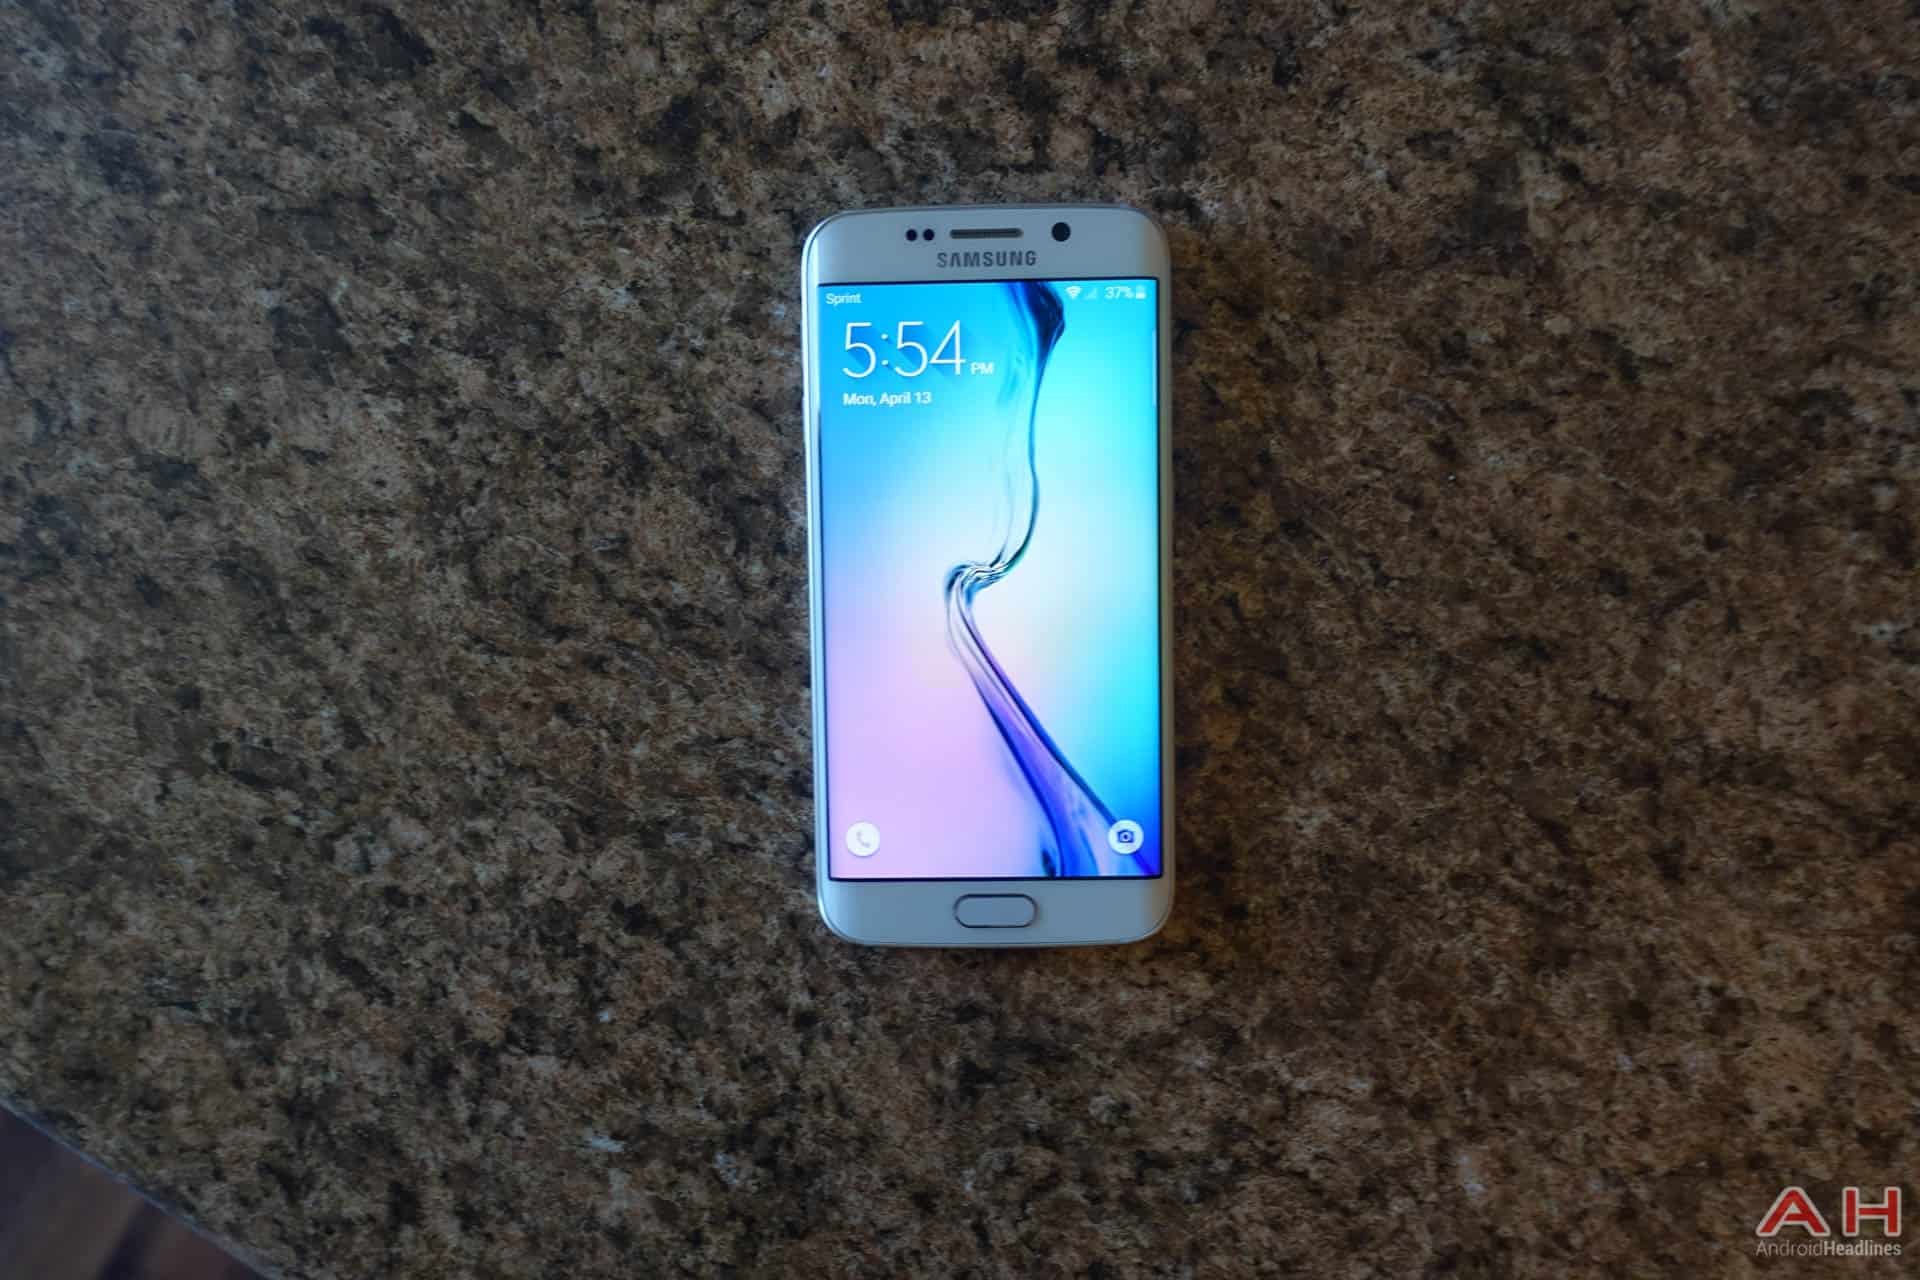 Samsung-Galaxy-S6-Edge-AH-16